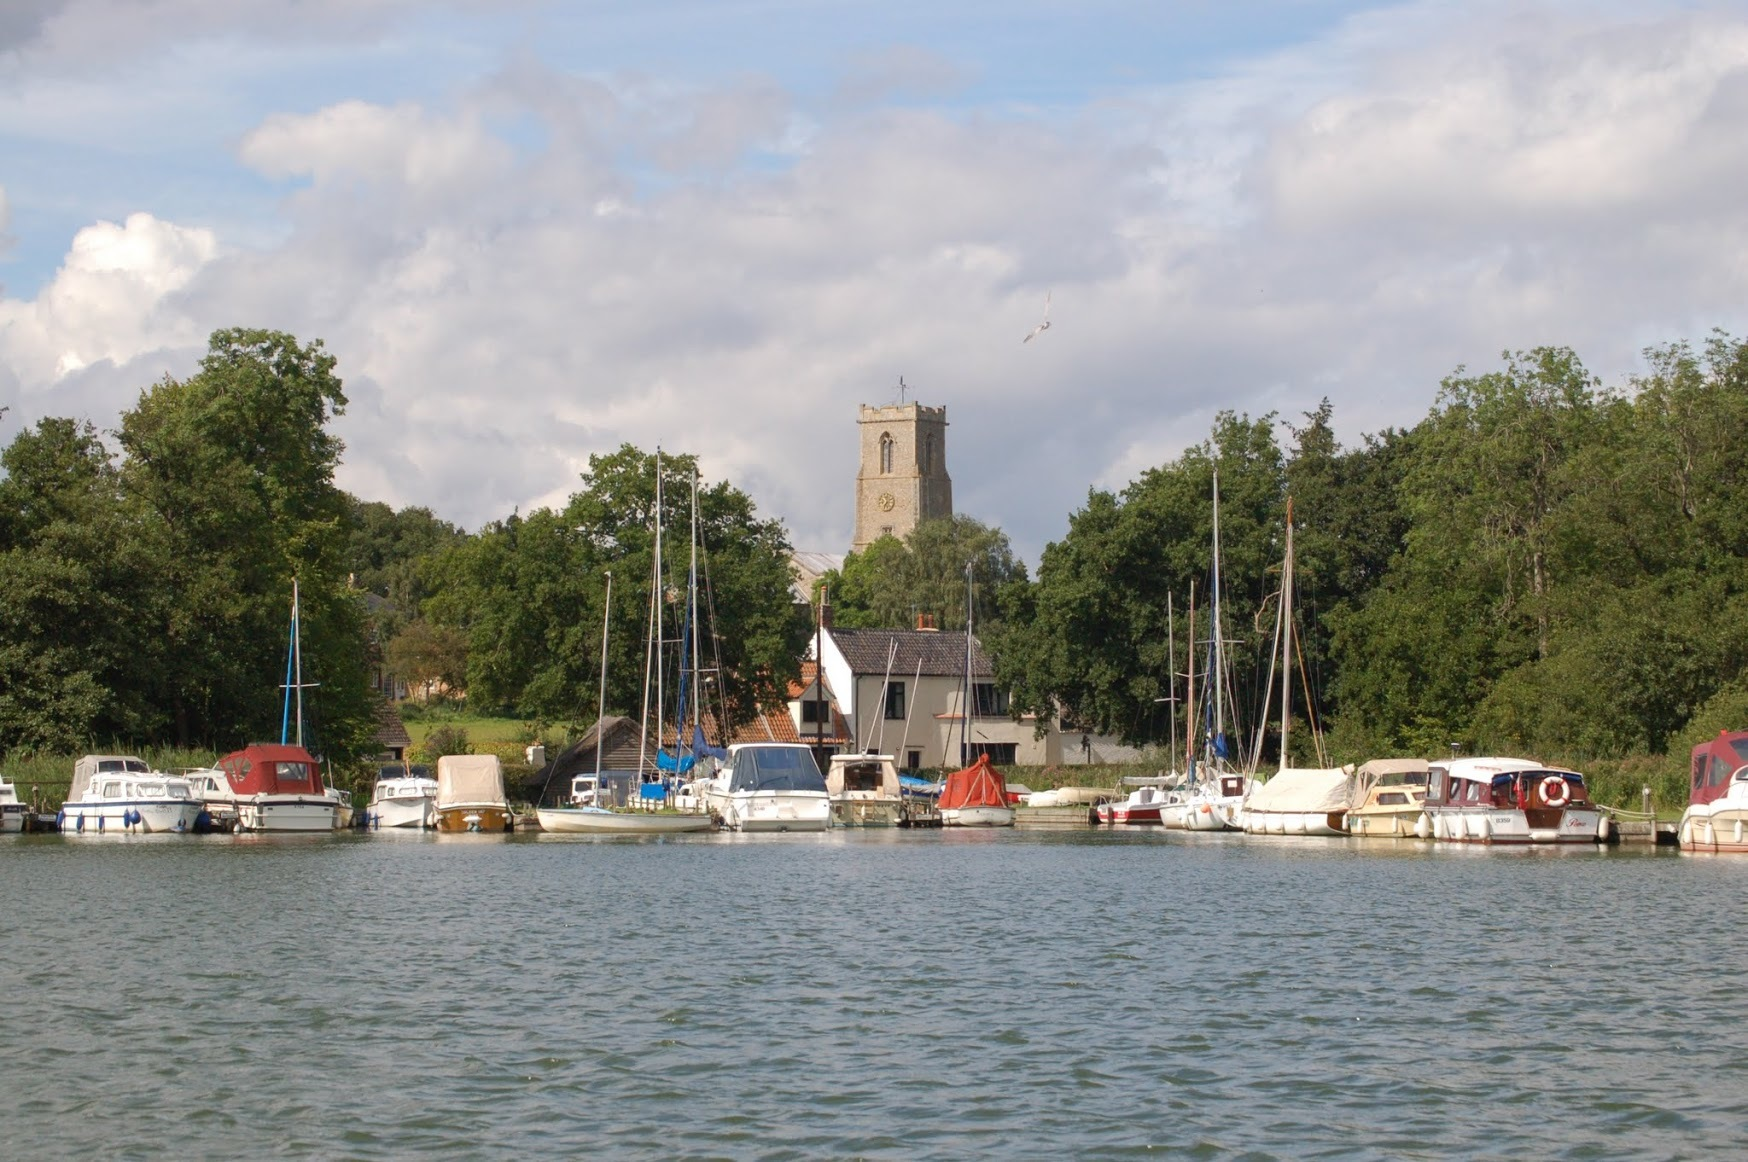 Ranworth marina and church